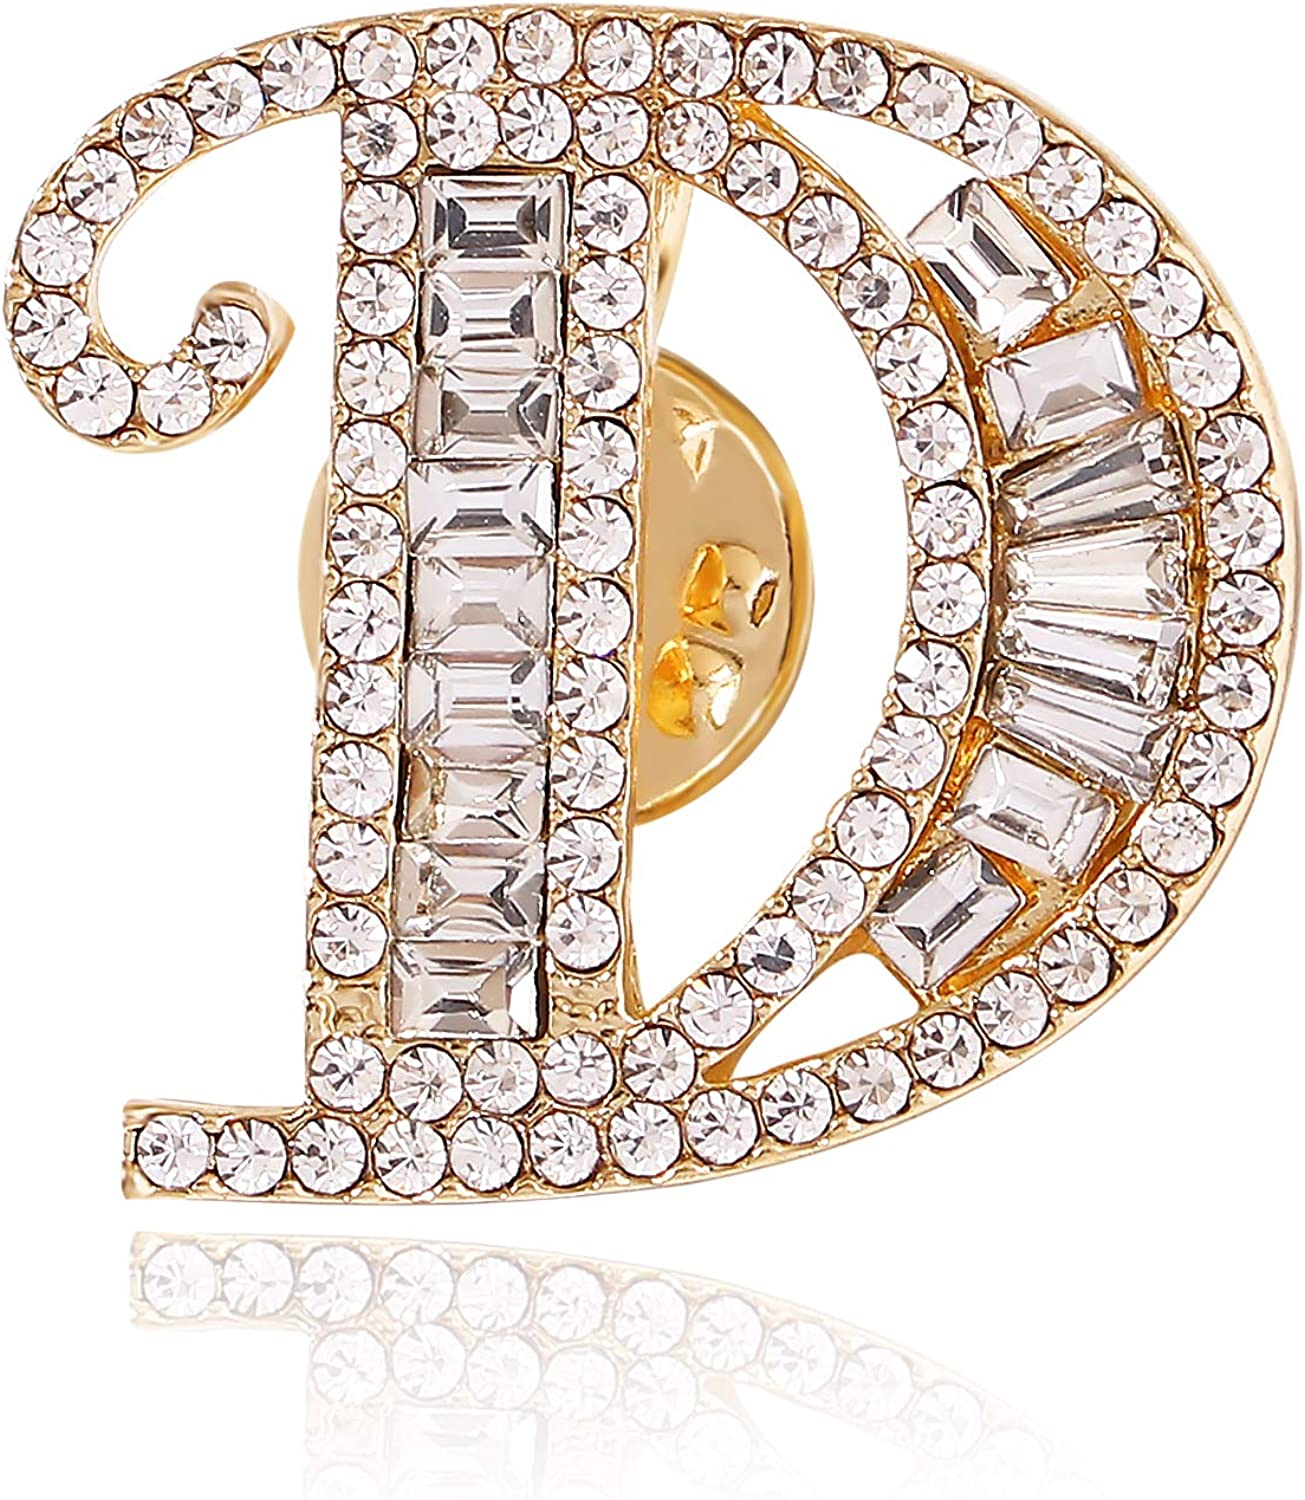 2 in 1 Gold Initial Letter Alphabet Crystal Rhinestone Brooch Pin Necklace Set